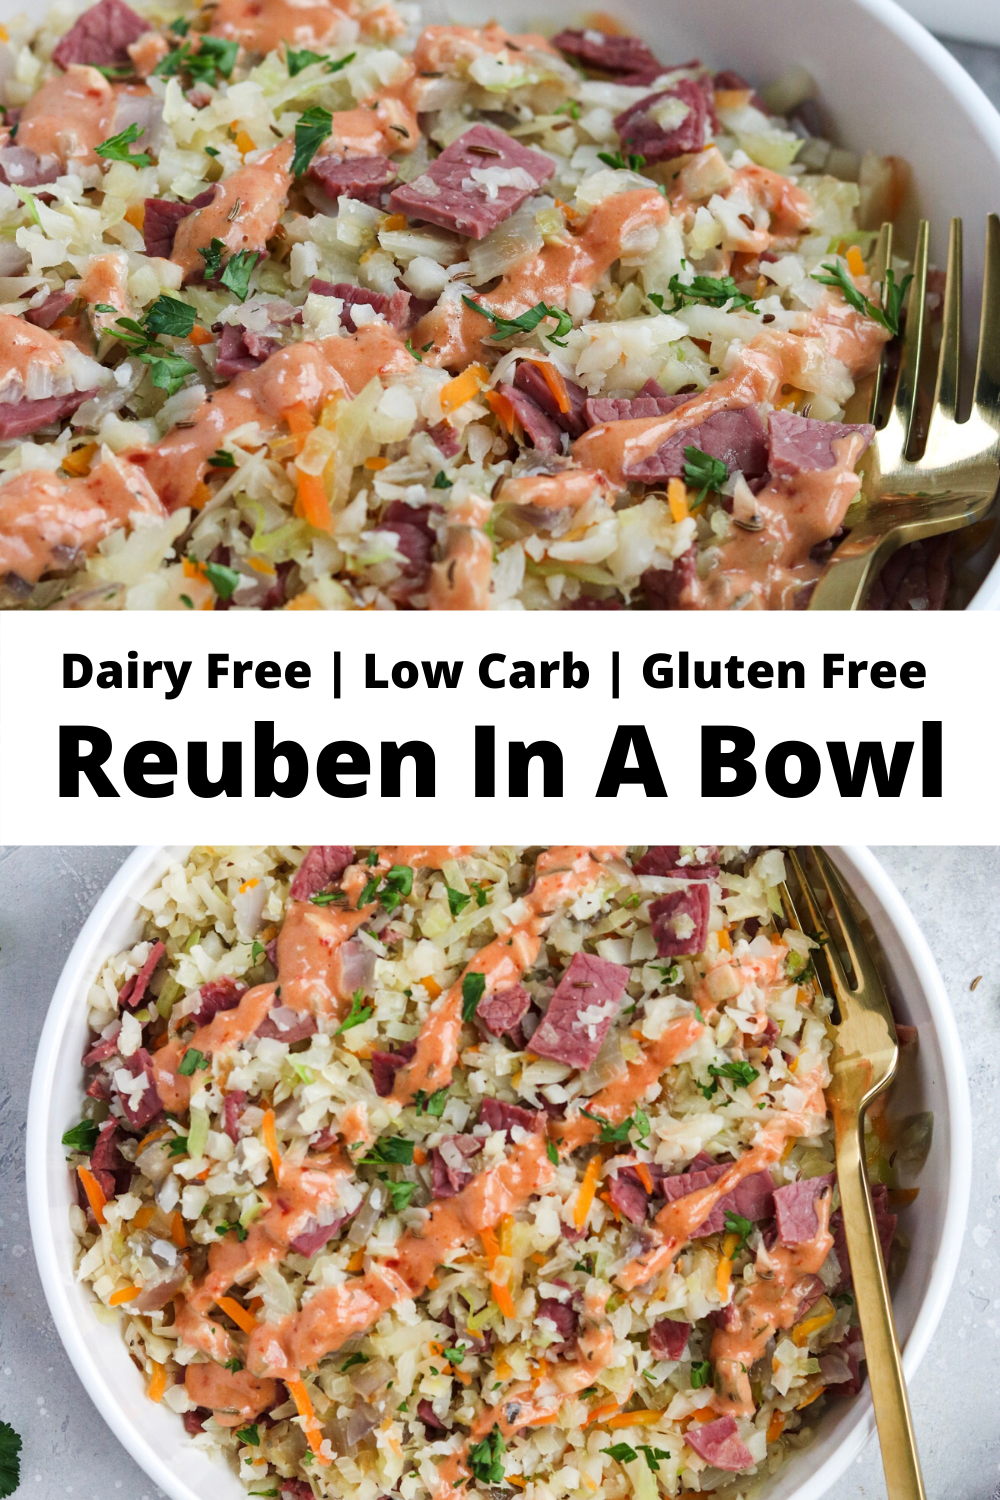 This Reuben in a Bowl recipe is a low carb, gluten free, dairy free, and grain free alternative to the classic American deli sandwich! Perfect for St. Patrick's Day! #keto #ketorecipes #paleorecipes #reuben #reubeninabowl #stpattysday #stpaddysday #stpatricksday #easyrecipes #healthyrecipes #glutenfree #dairyfree #grainfree #lowcarb